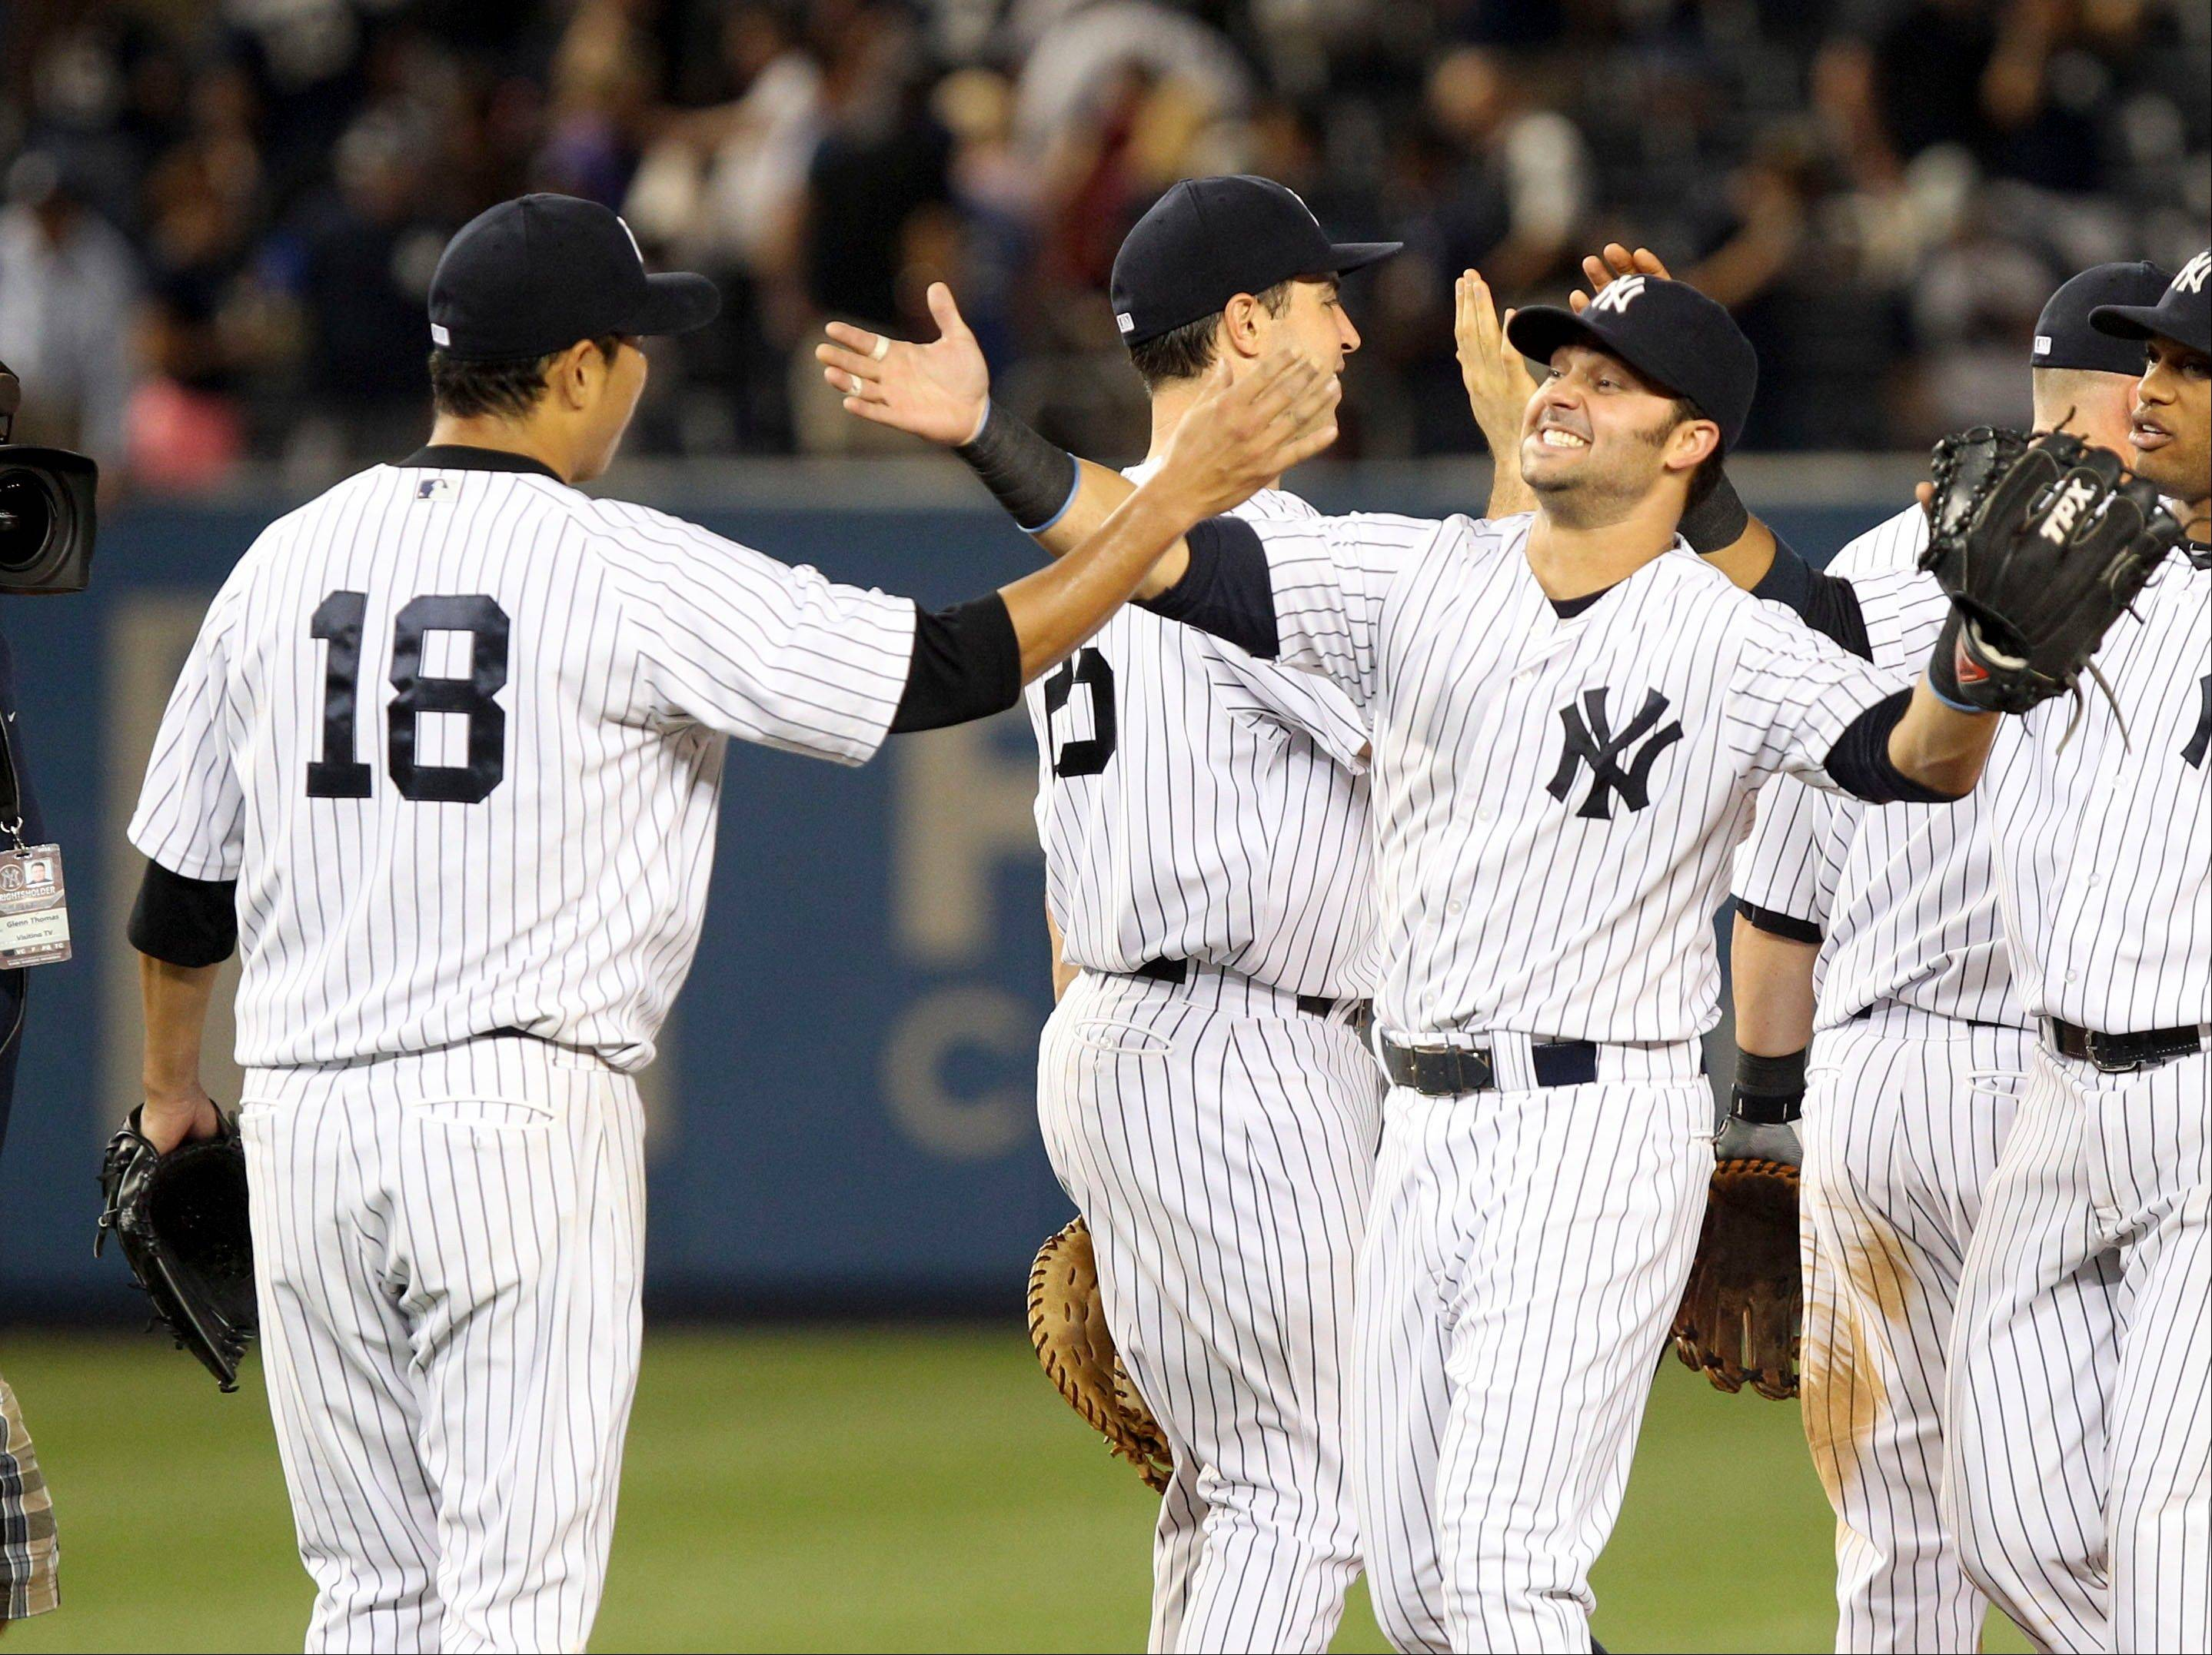 The New York Yankees� Nick Swisher, right, greets pitcher Hiroki Kuroda after Kuroda threw a two-hitter Tuesday against the Texas Rangers at Yankee Stadium in New York. The Yankees won 3-0.